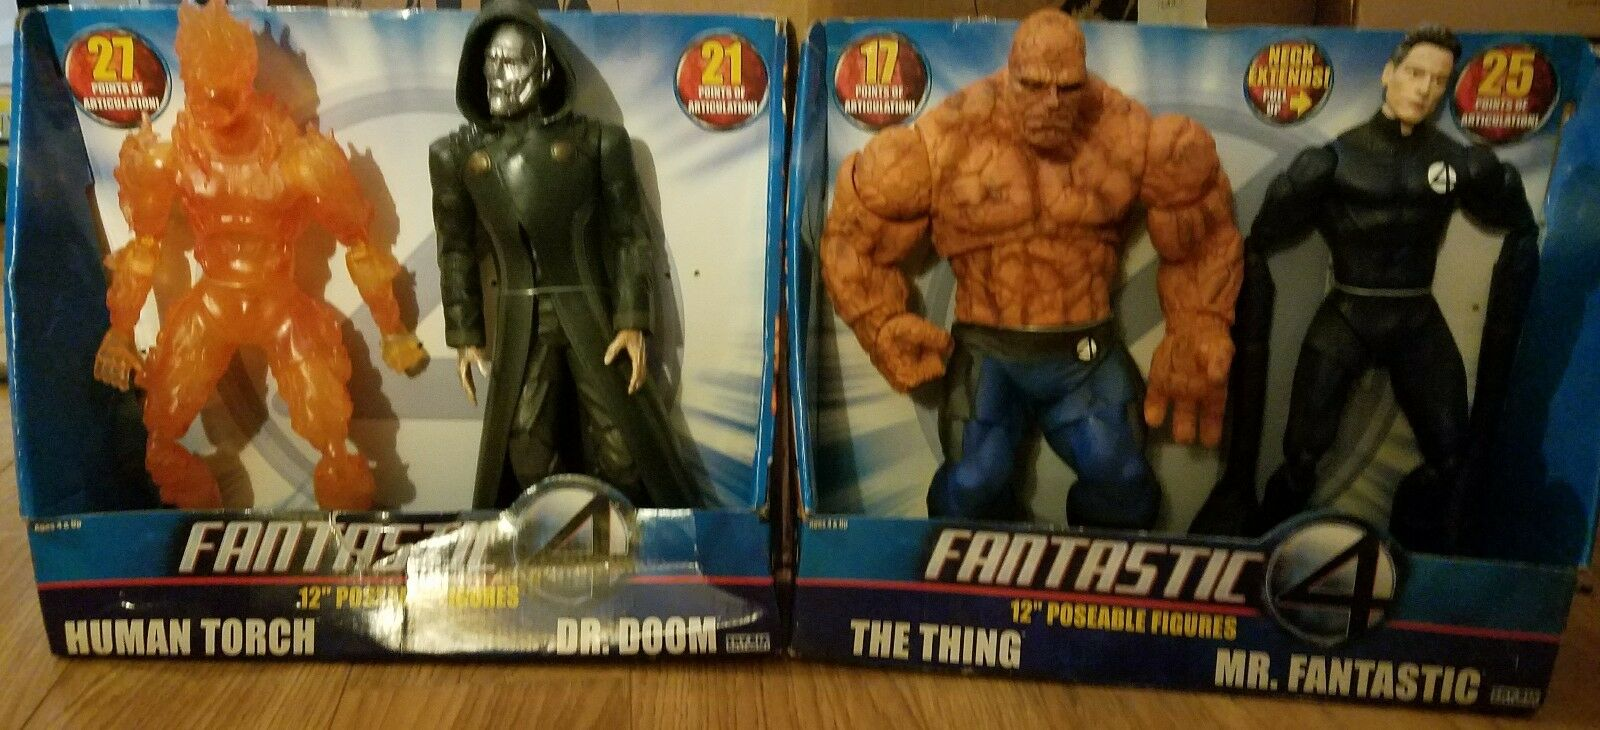 Fantastic Four 12  Poseable Figures Human Torch Dr. Doom The Thing Mr. Fantastic